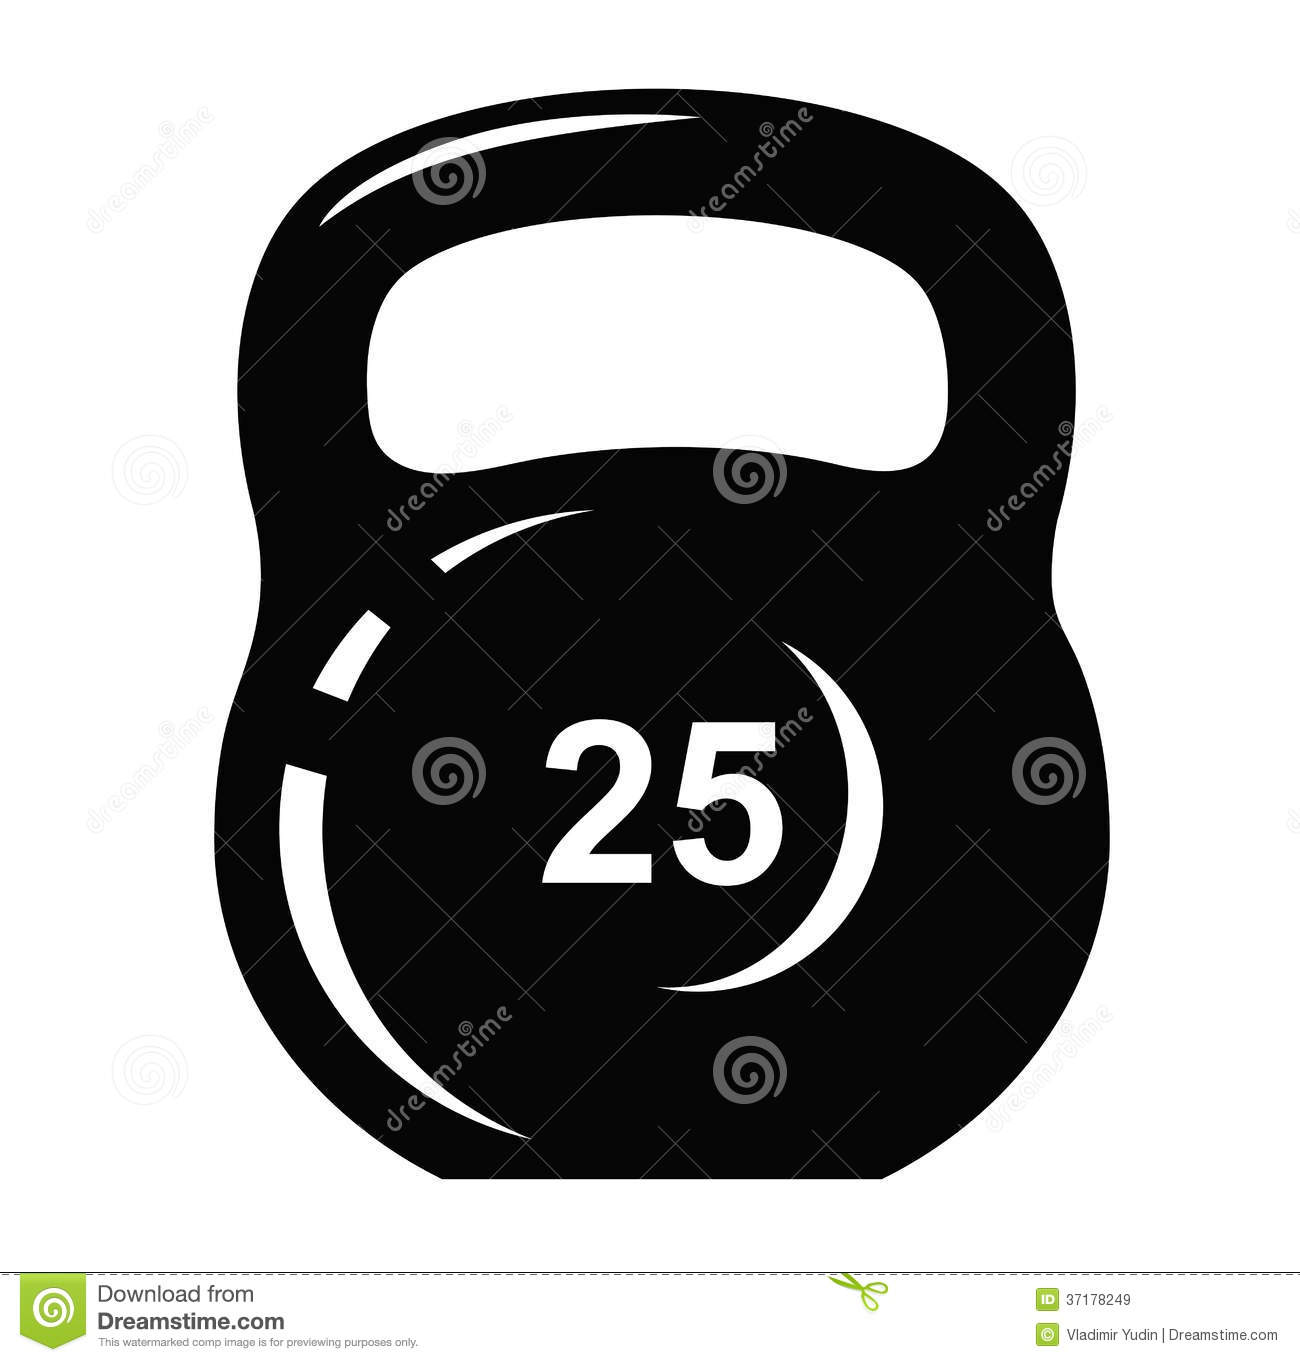 Kettlebell Icon Royalty Free Stock Images   Image  37178249